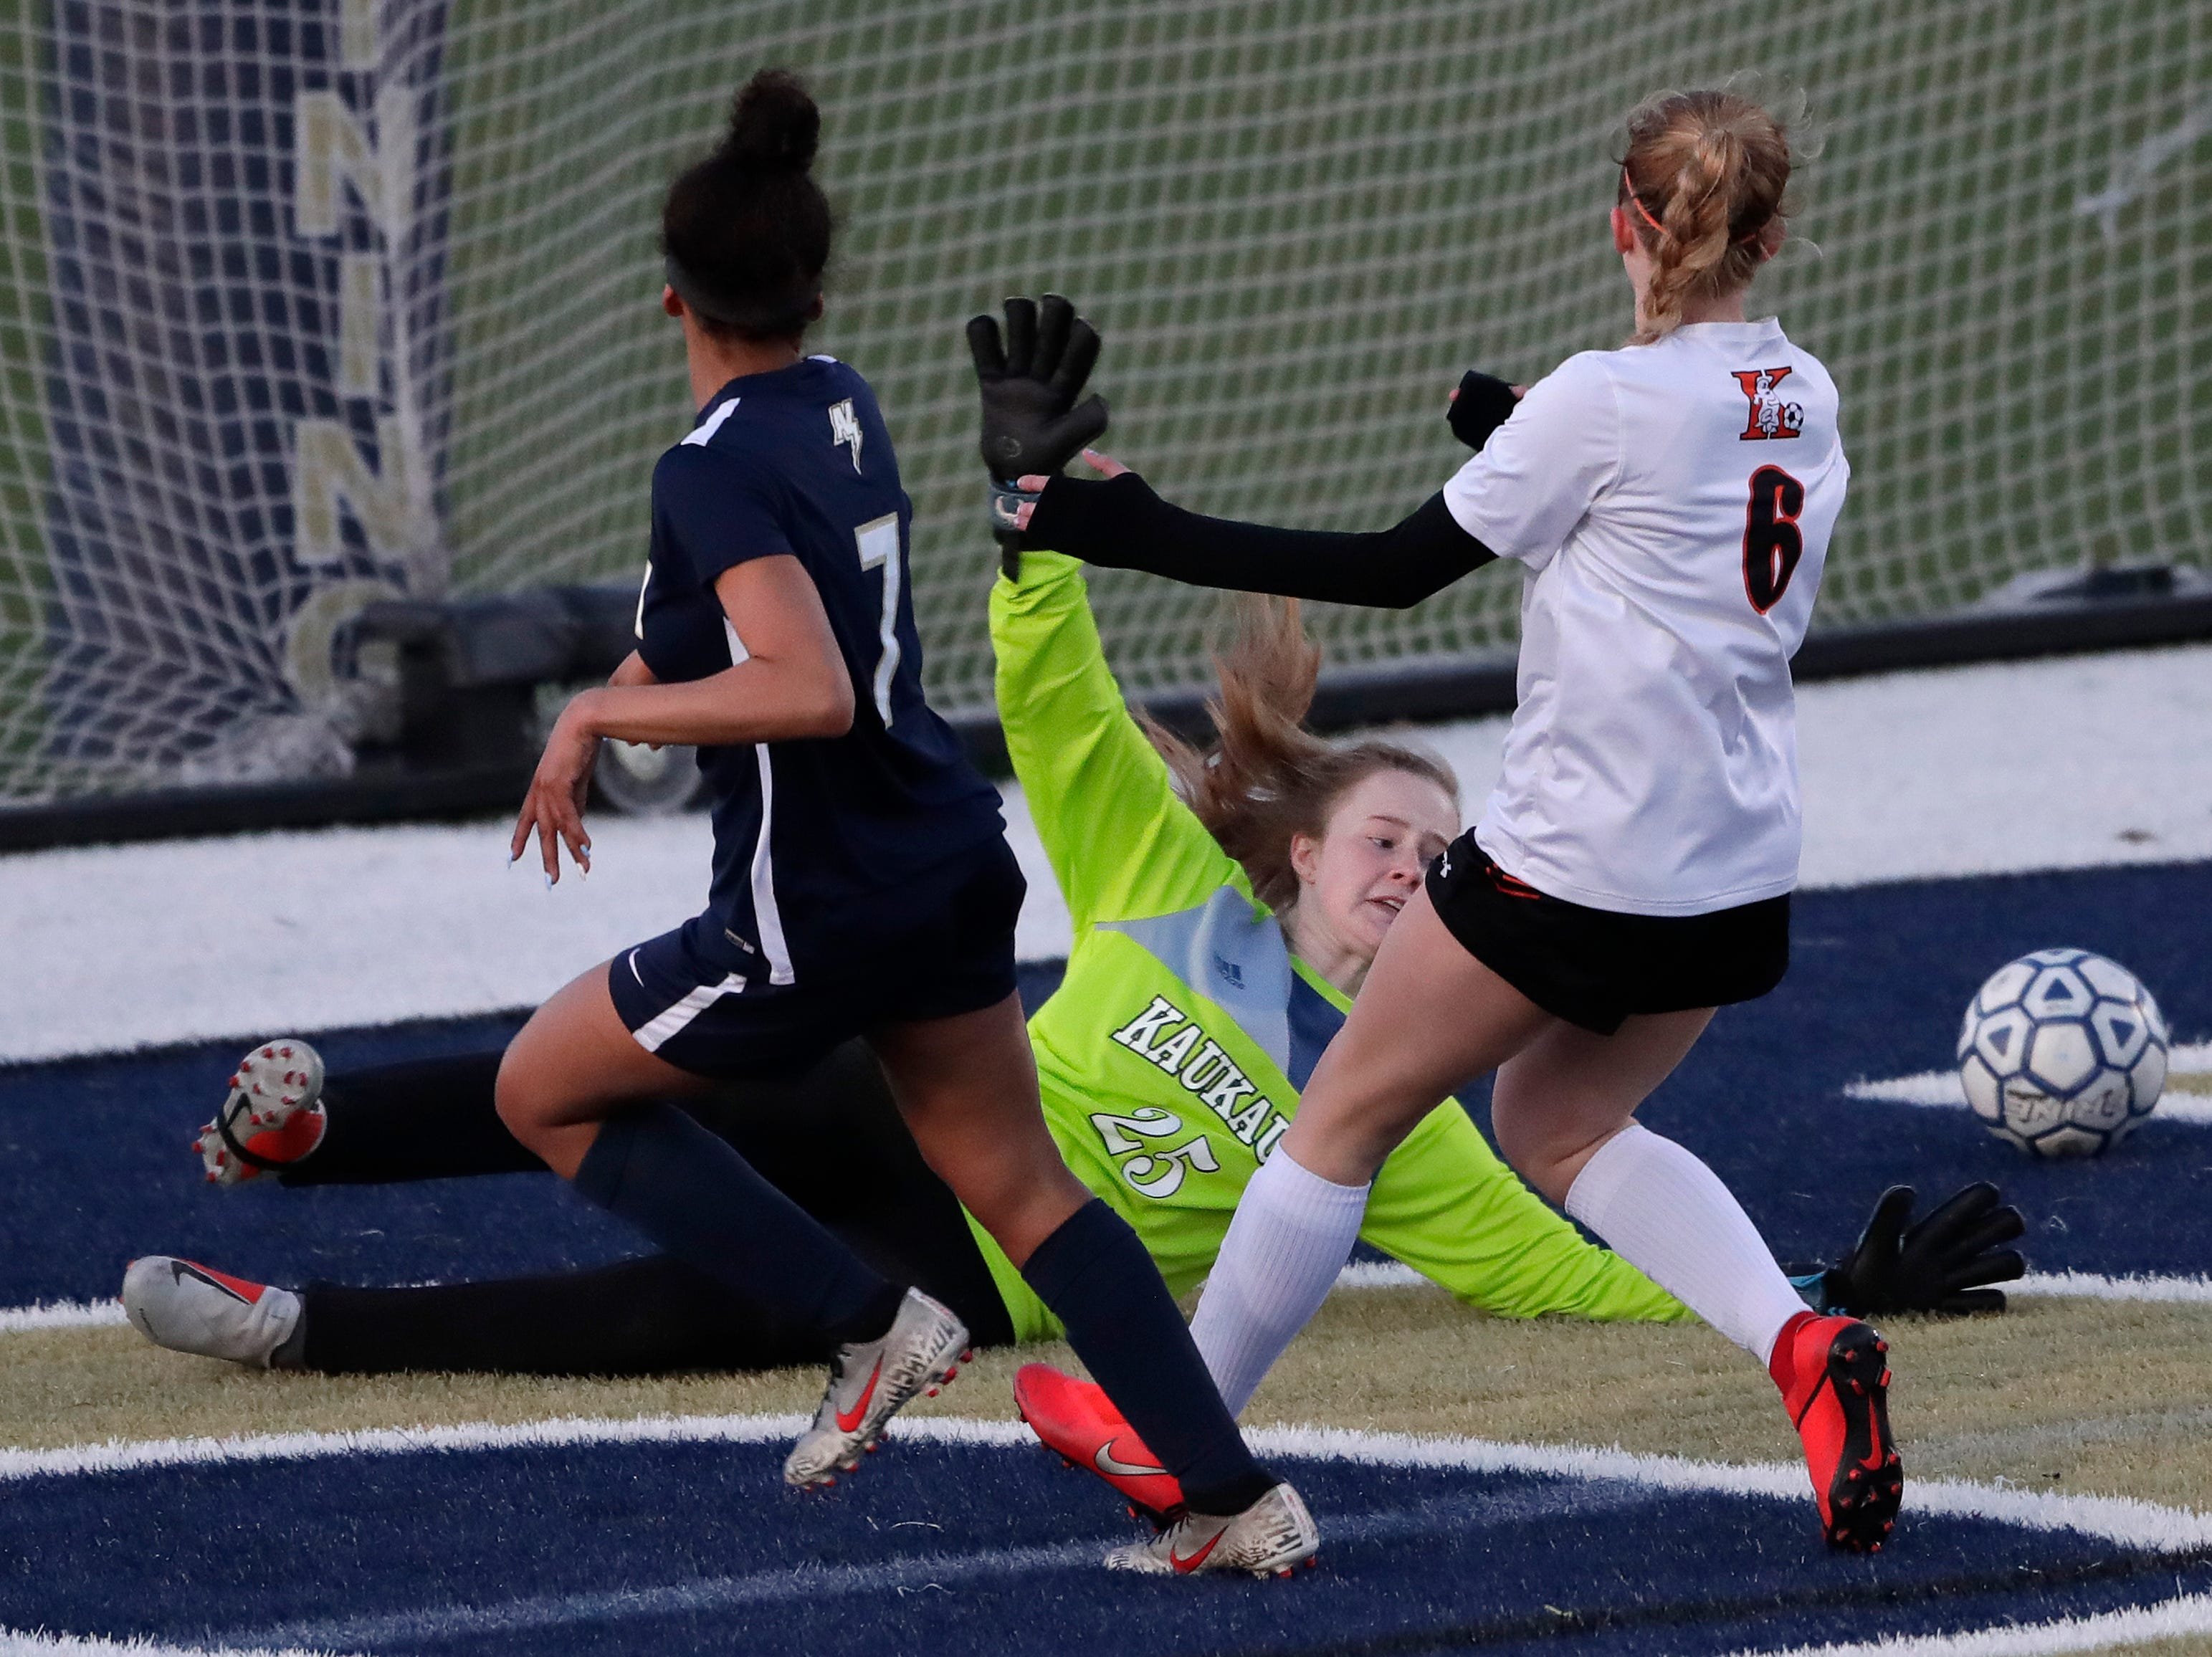 Appleton North High School's Izzie Ruzzicone (7) scores a goal against Kaukauna High School's keeper Autumn Steffens (25) and Meradith Schaller (6) during their girls soccer game Tuesday, April 23, 2019, in Appleton, Wis. 